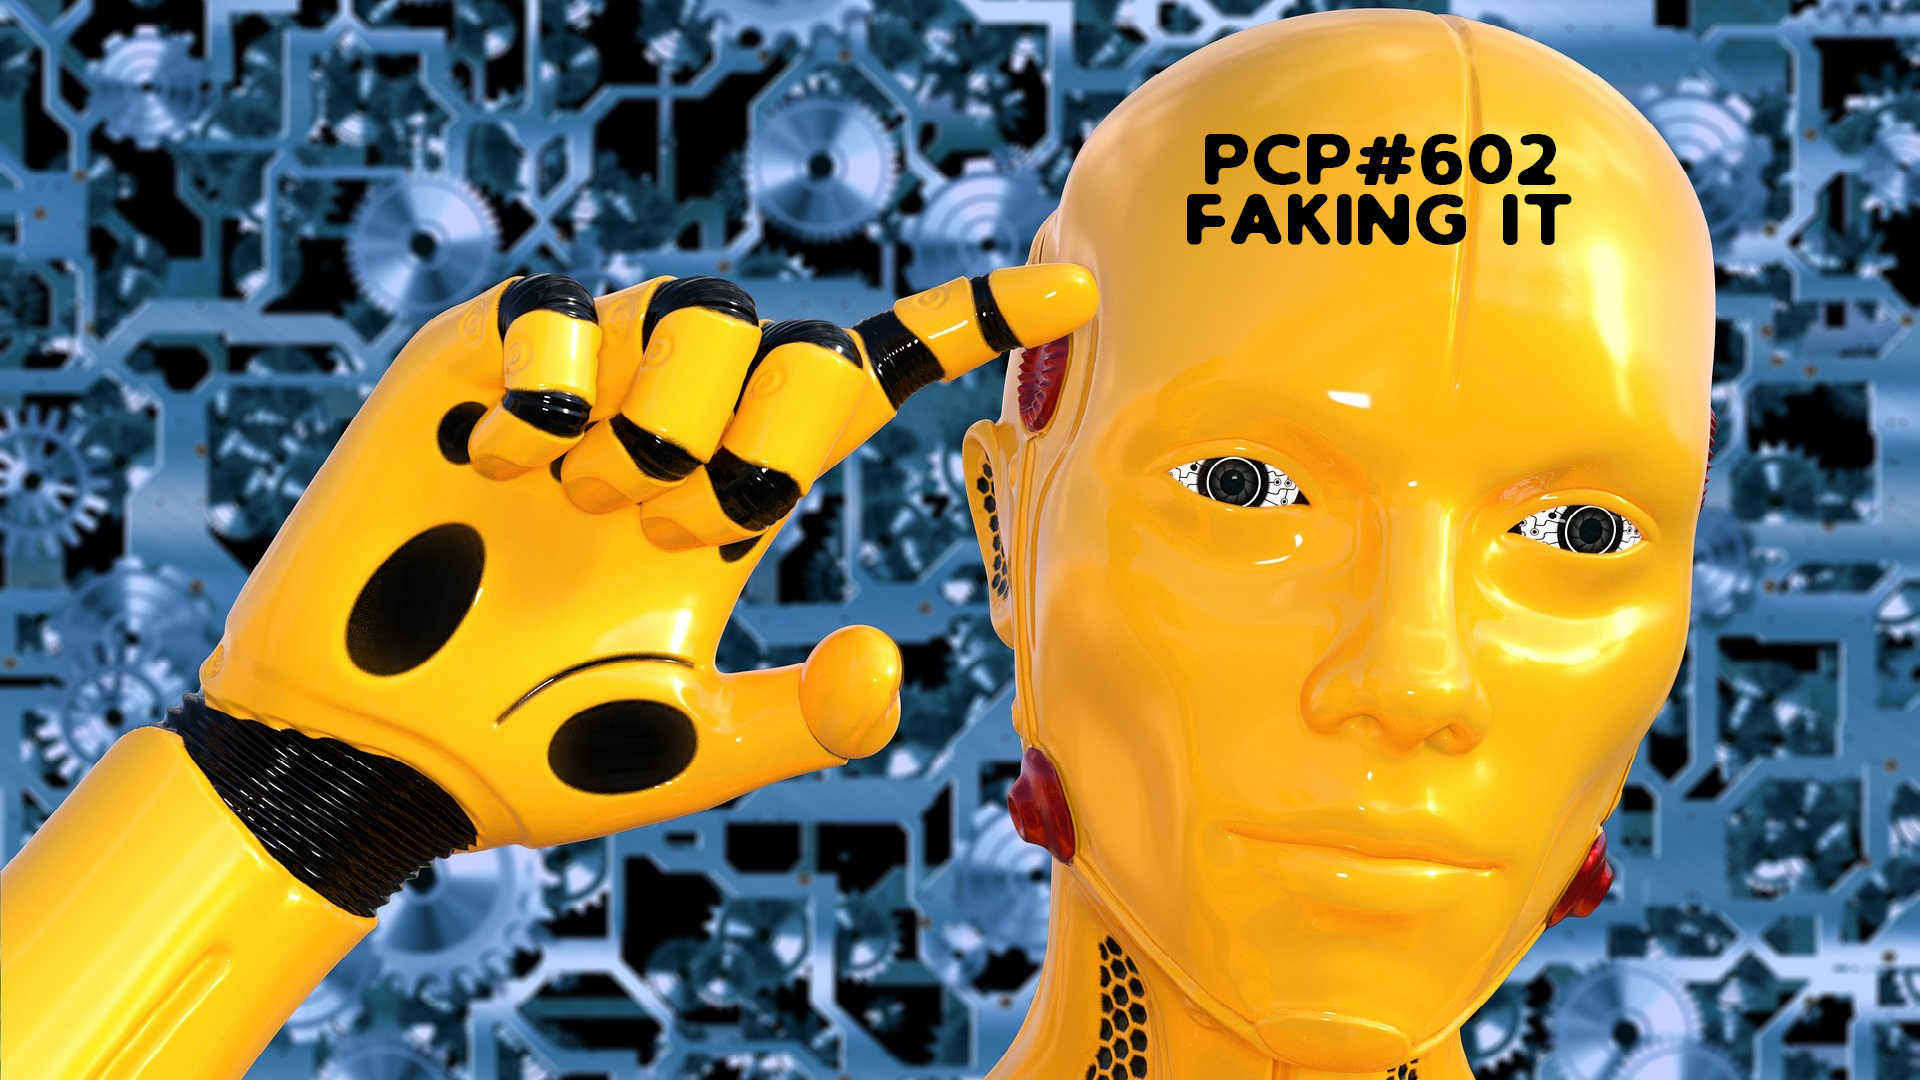 PCP#602... Faking It...